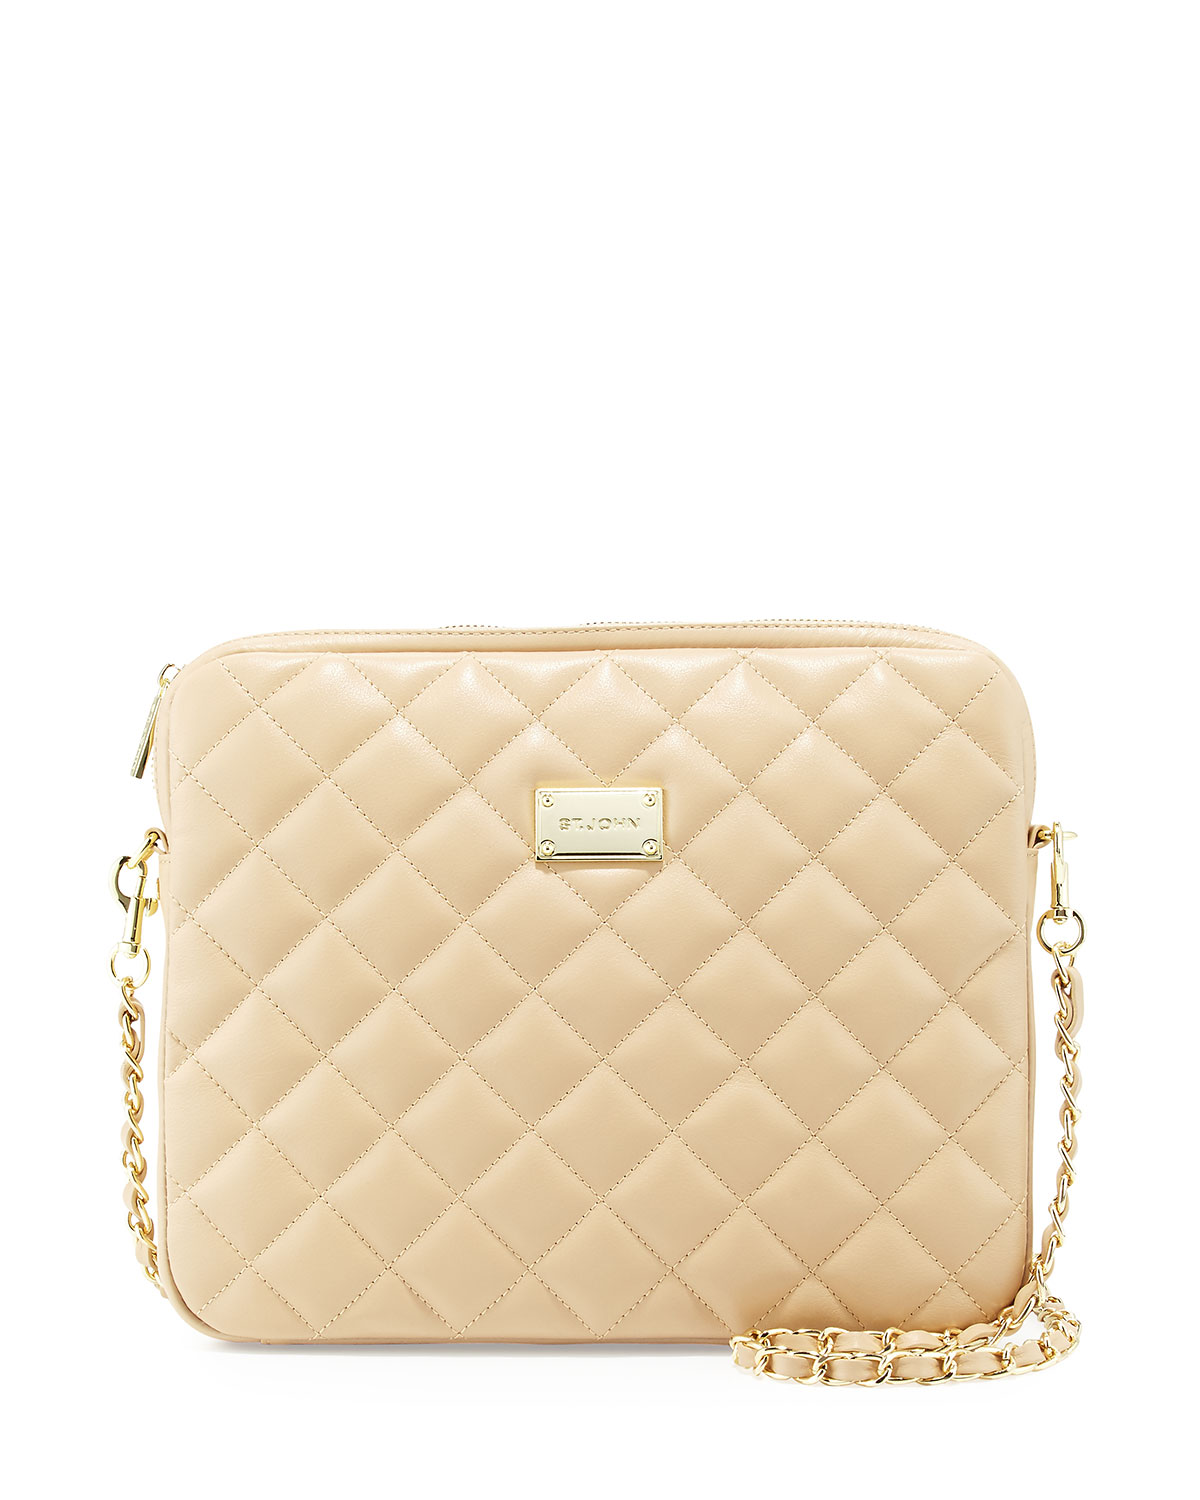 Quilted Leather Chain Shoulder Bag Classic Beige Gold